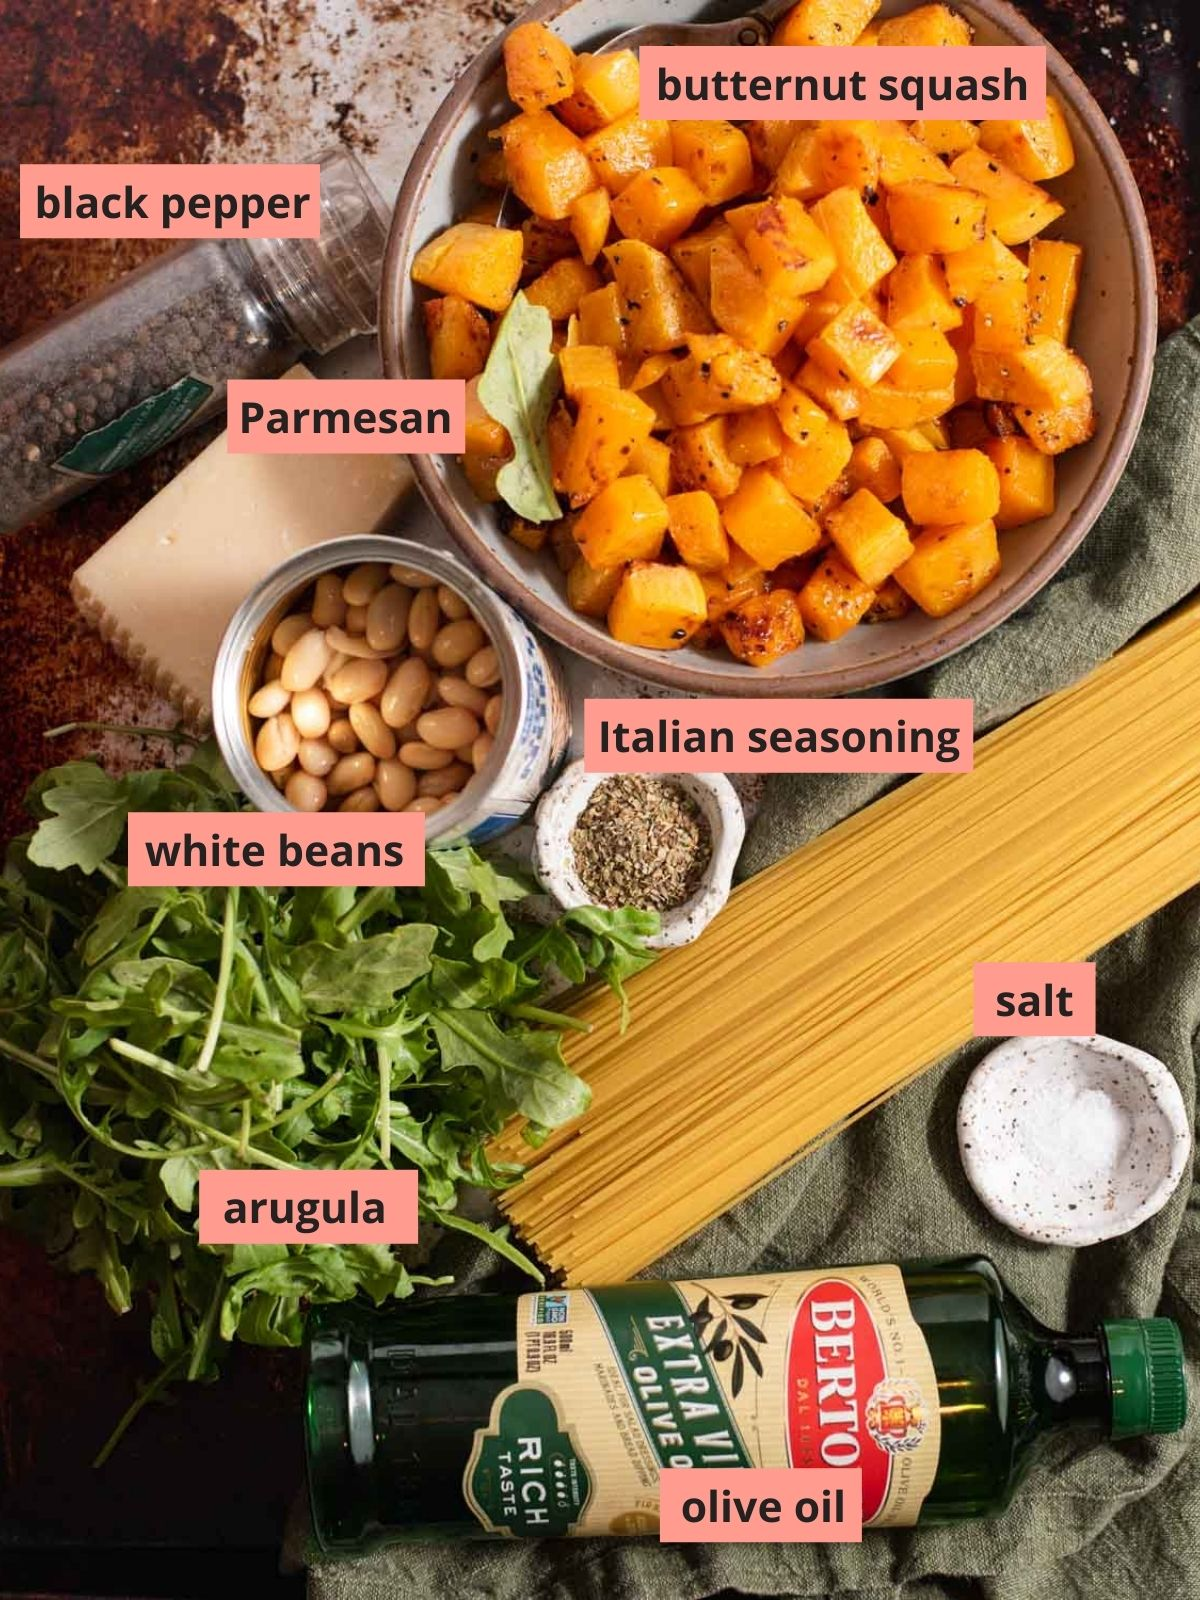 Labeled ingredients used to make butternut squash